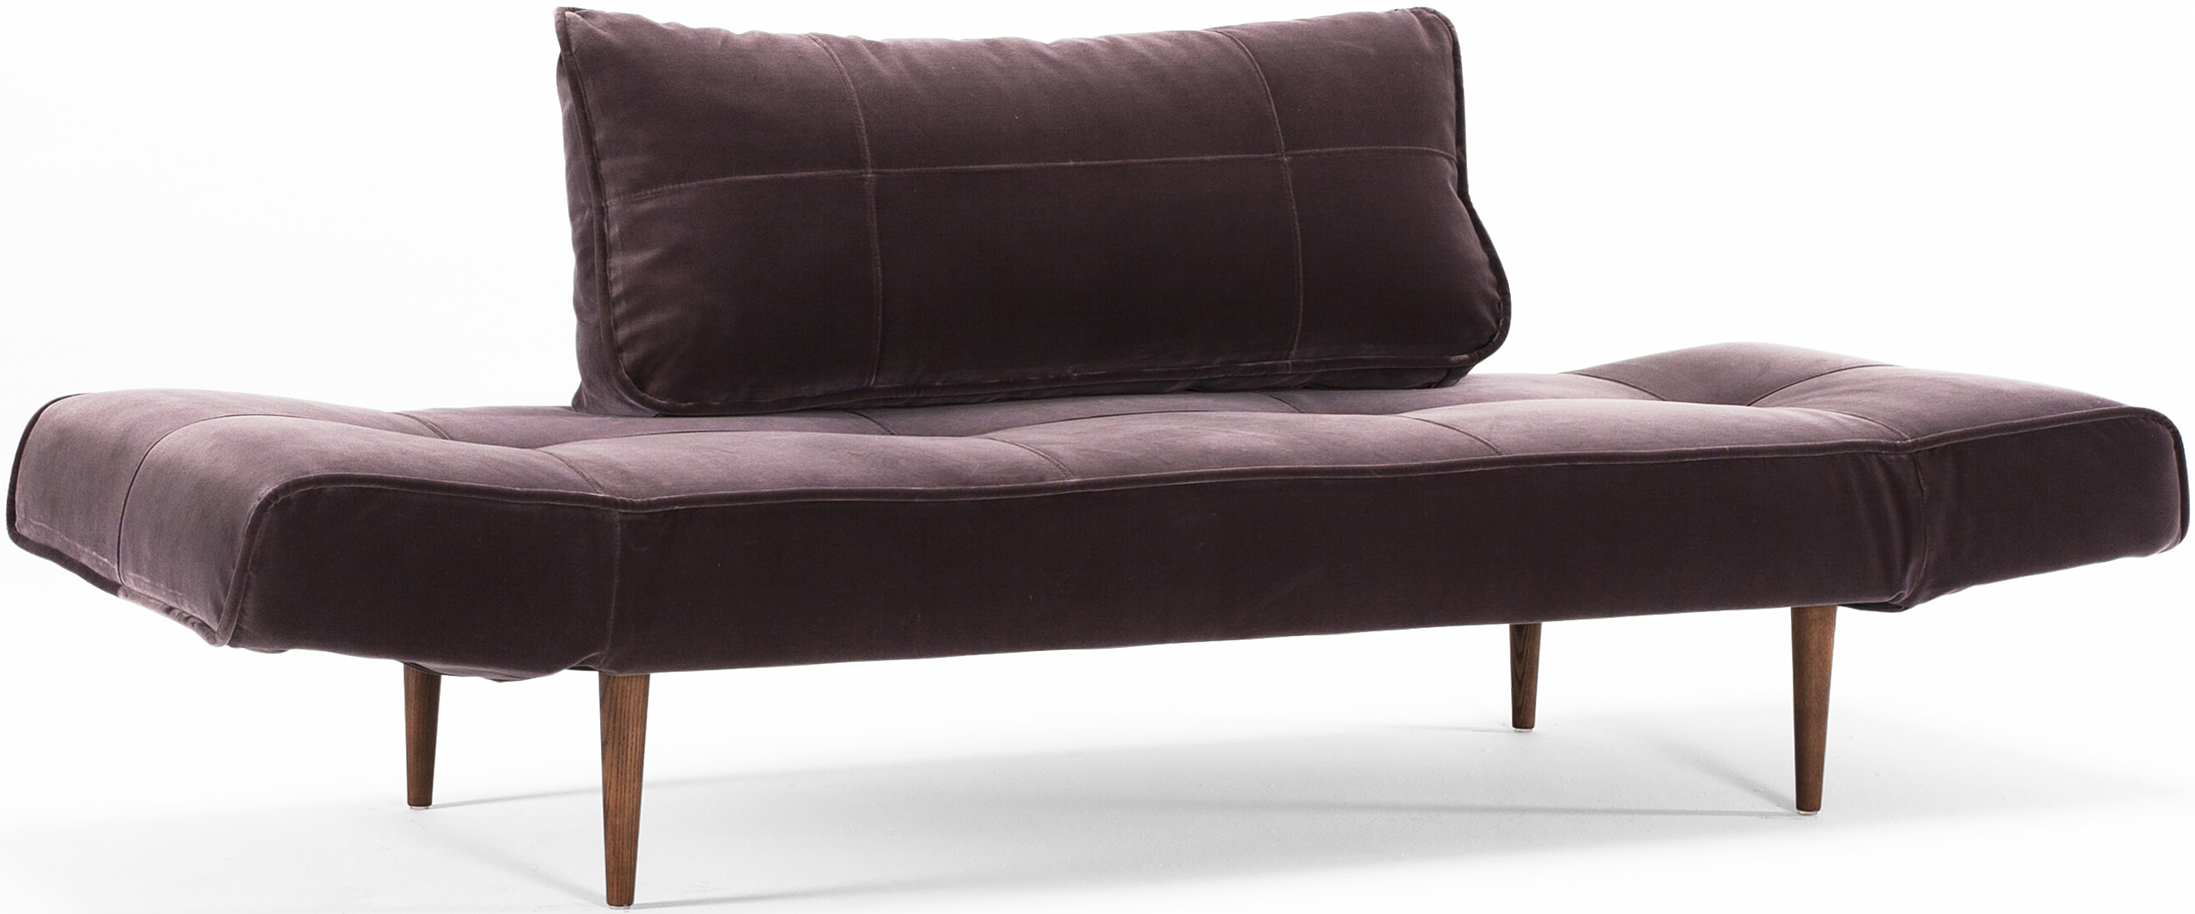 the zeal sofa by innovation living